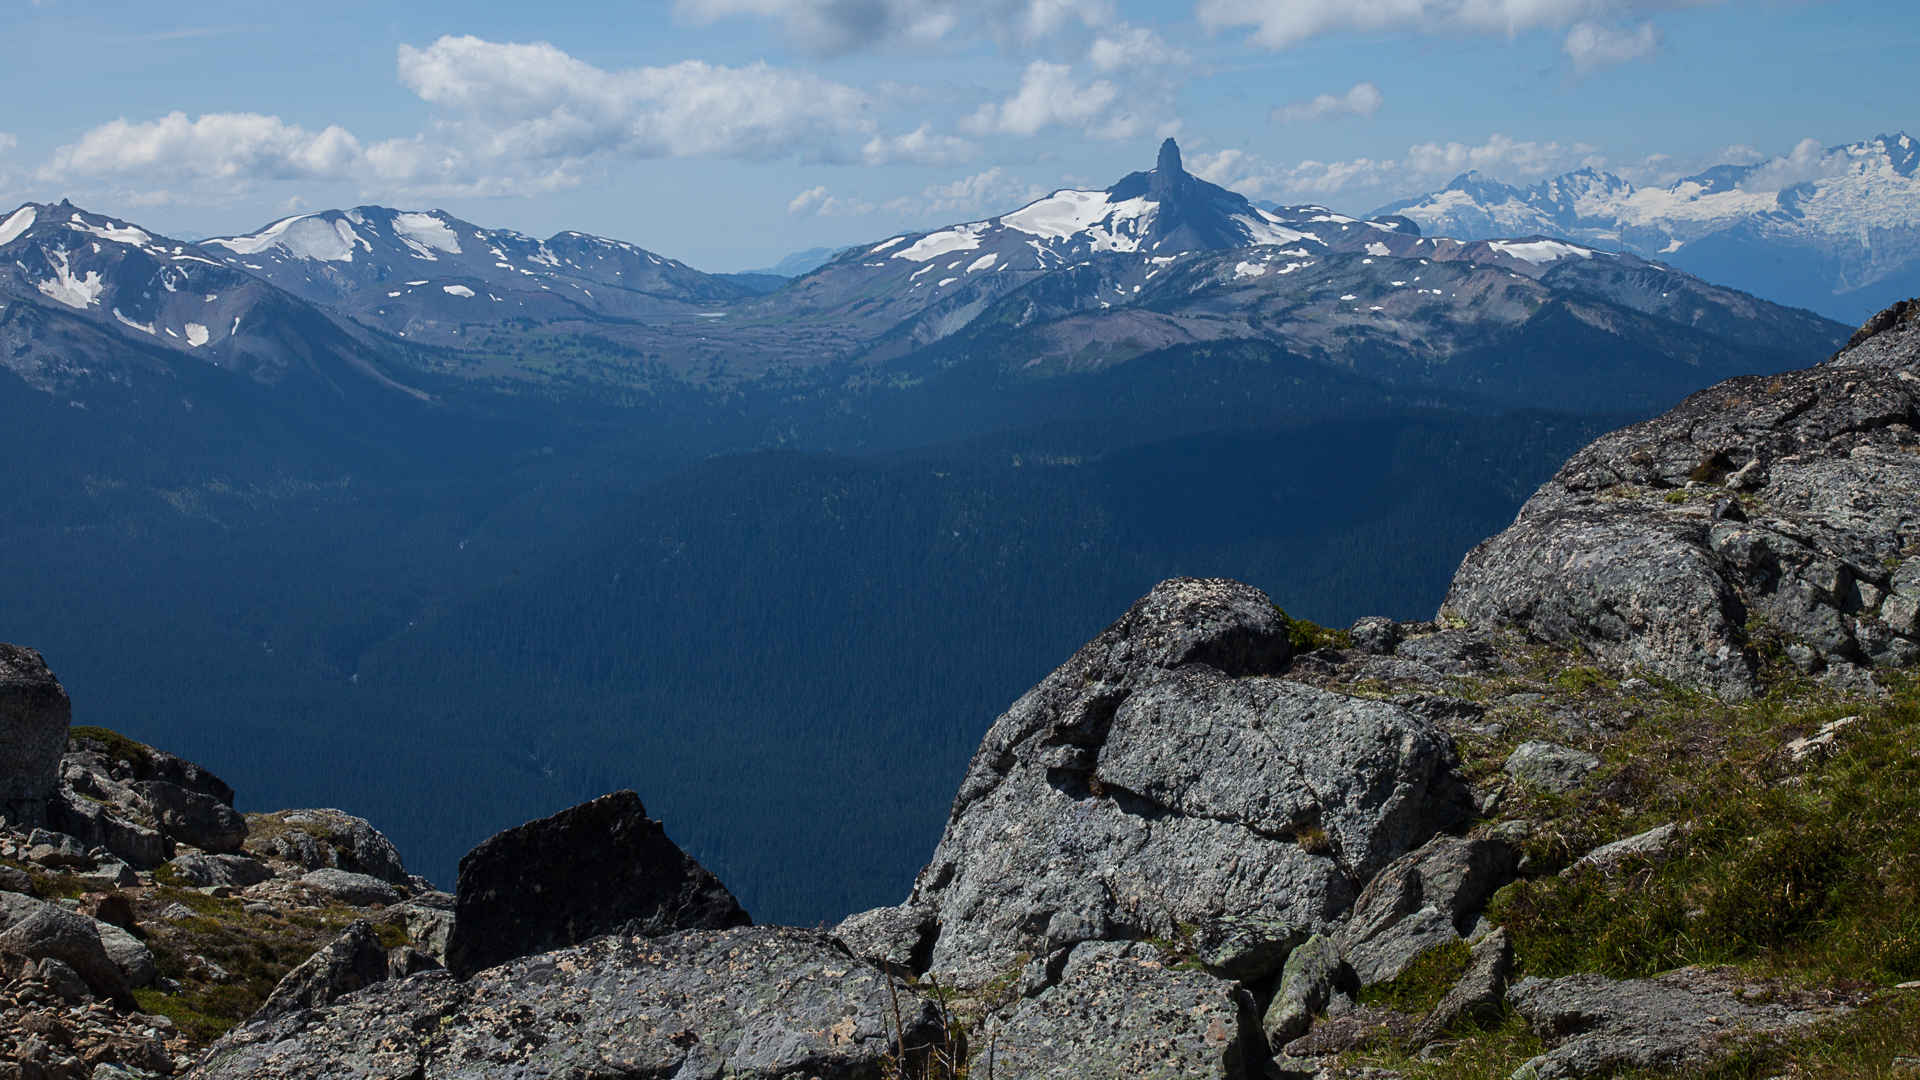 Black Tusk, off in the distance from the top of Whistler Mountain.